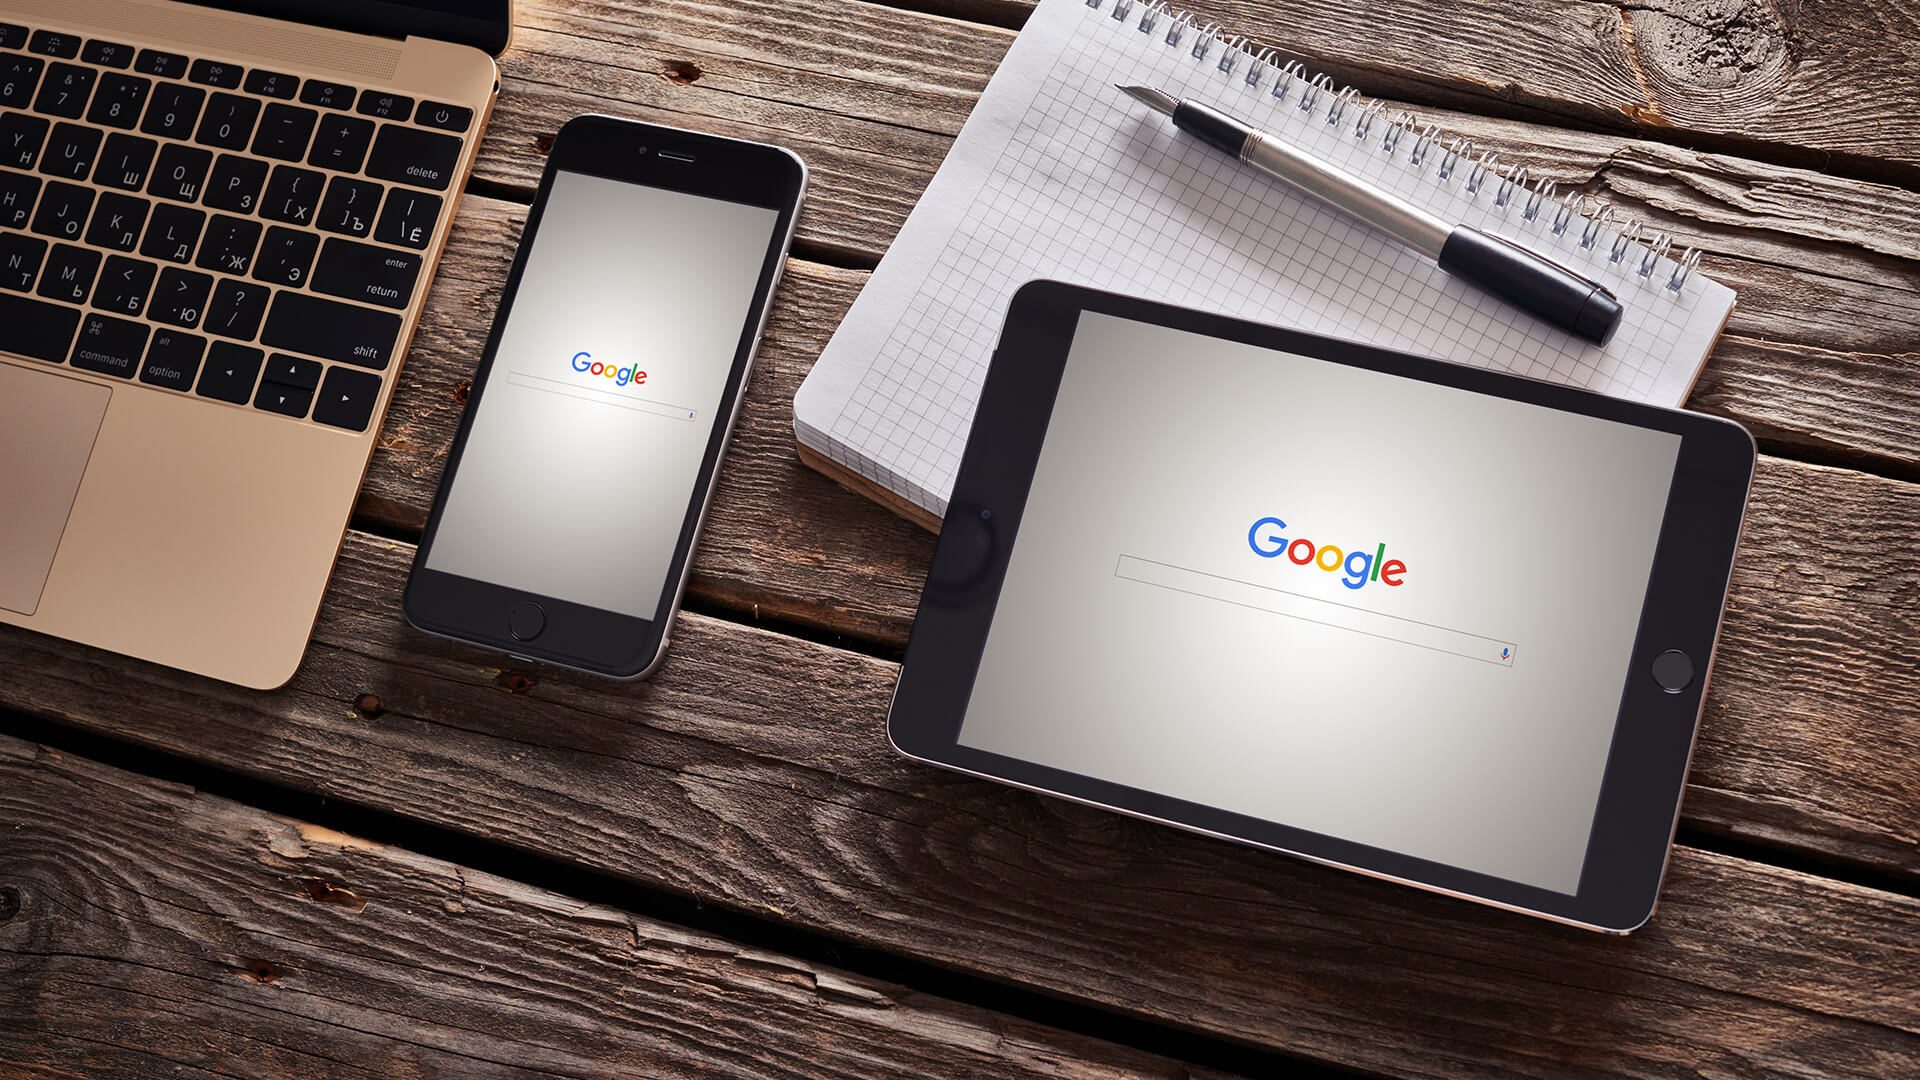 57% of traffic now from smartphones and tablets